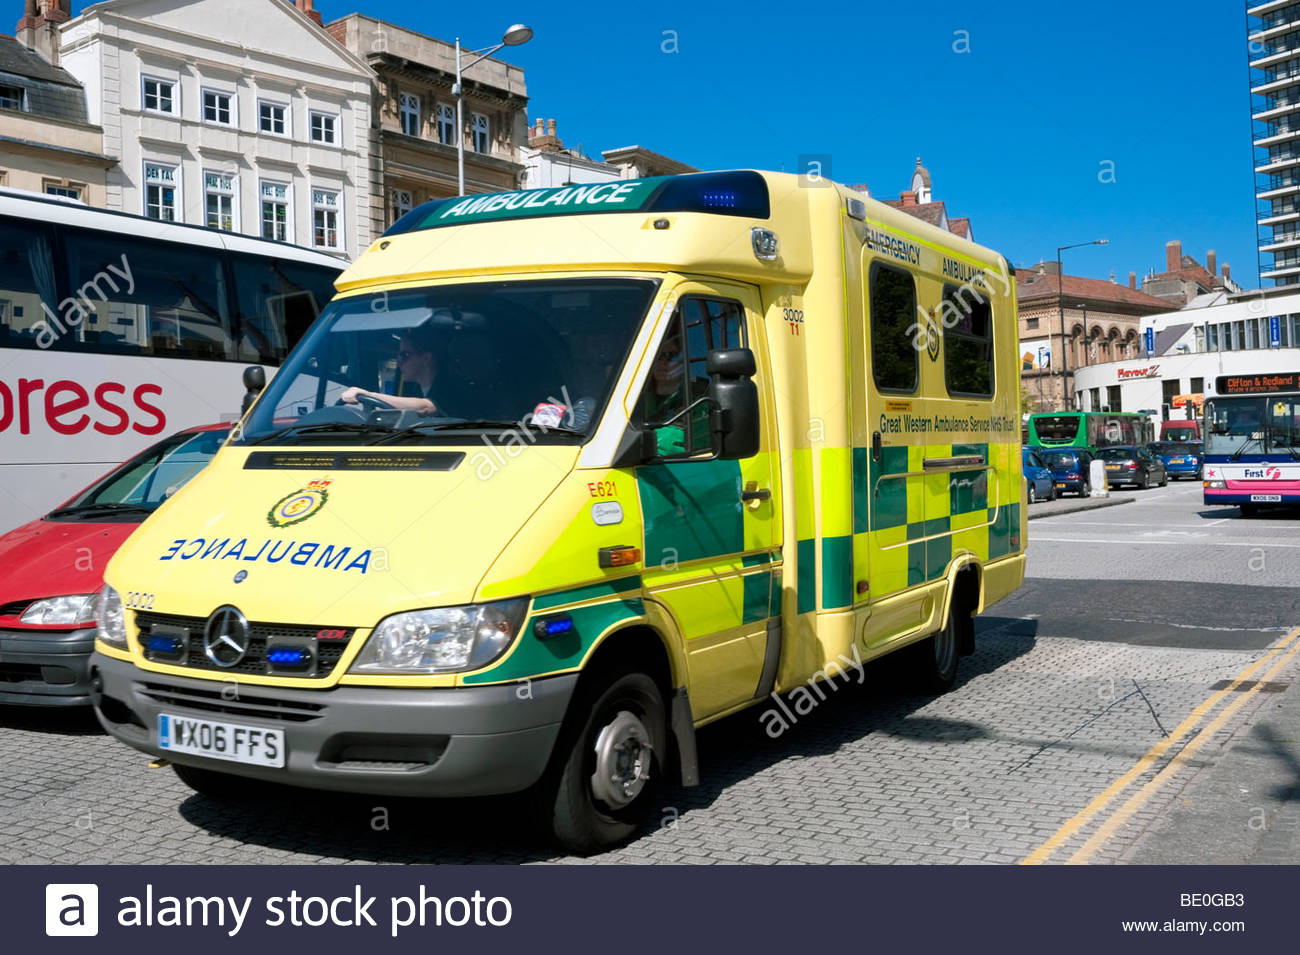 Great Western Ambulance Service NHS trust emergency vehicle in Bristol City Centre, UK. - Stock Image